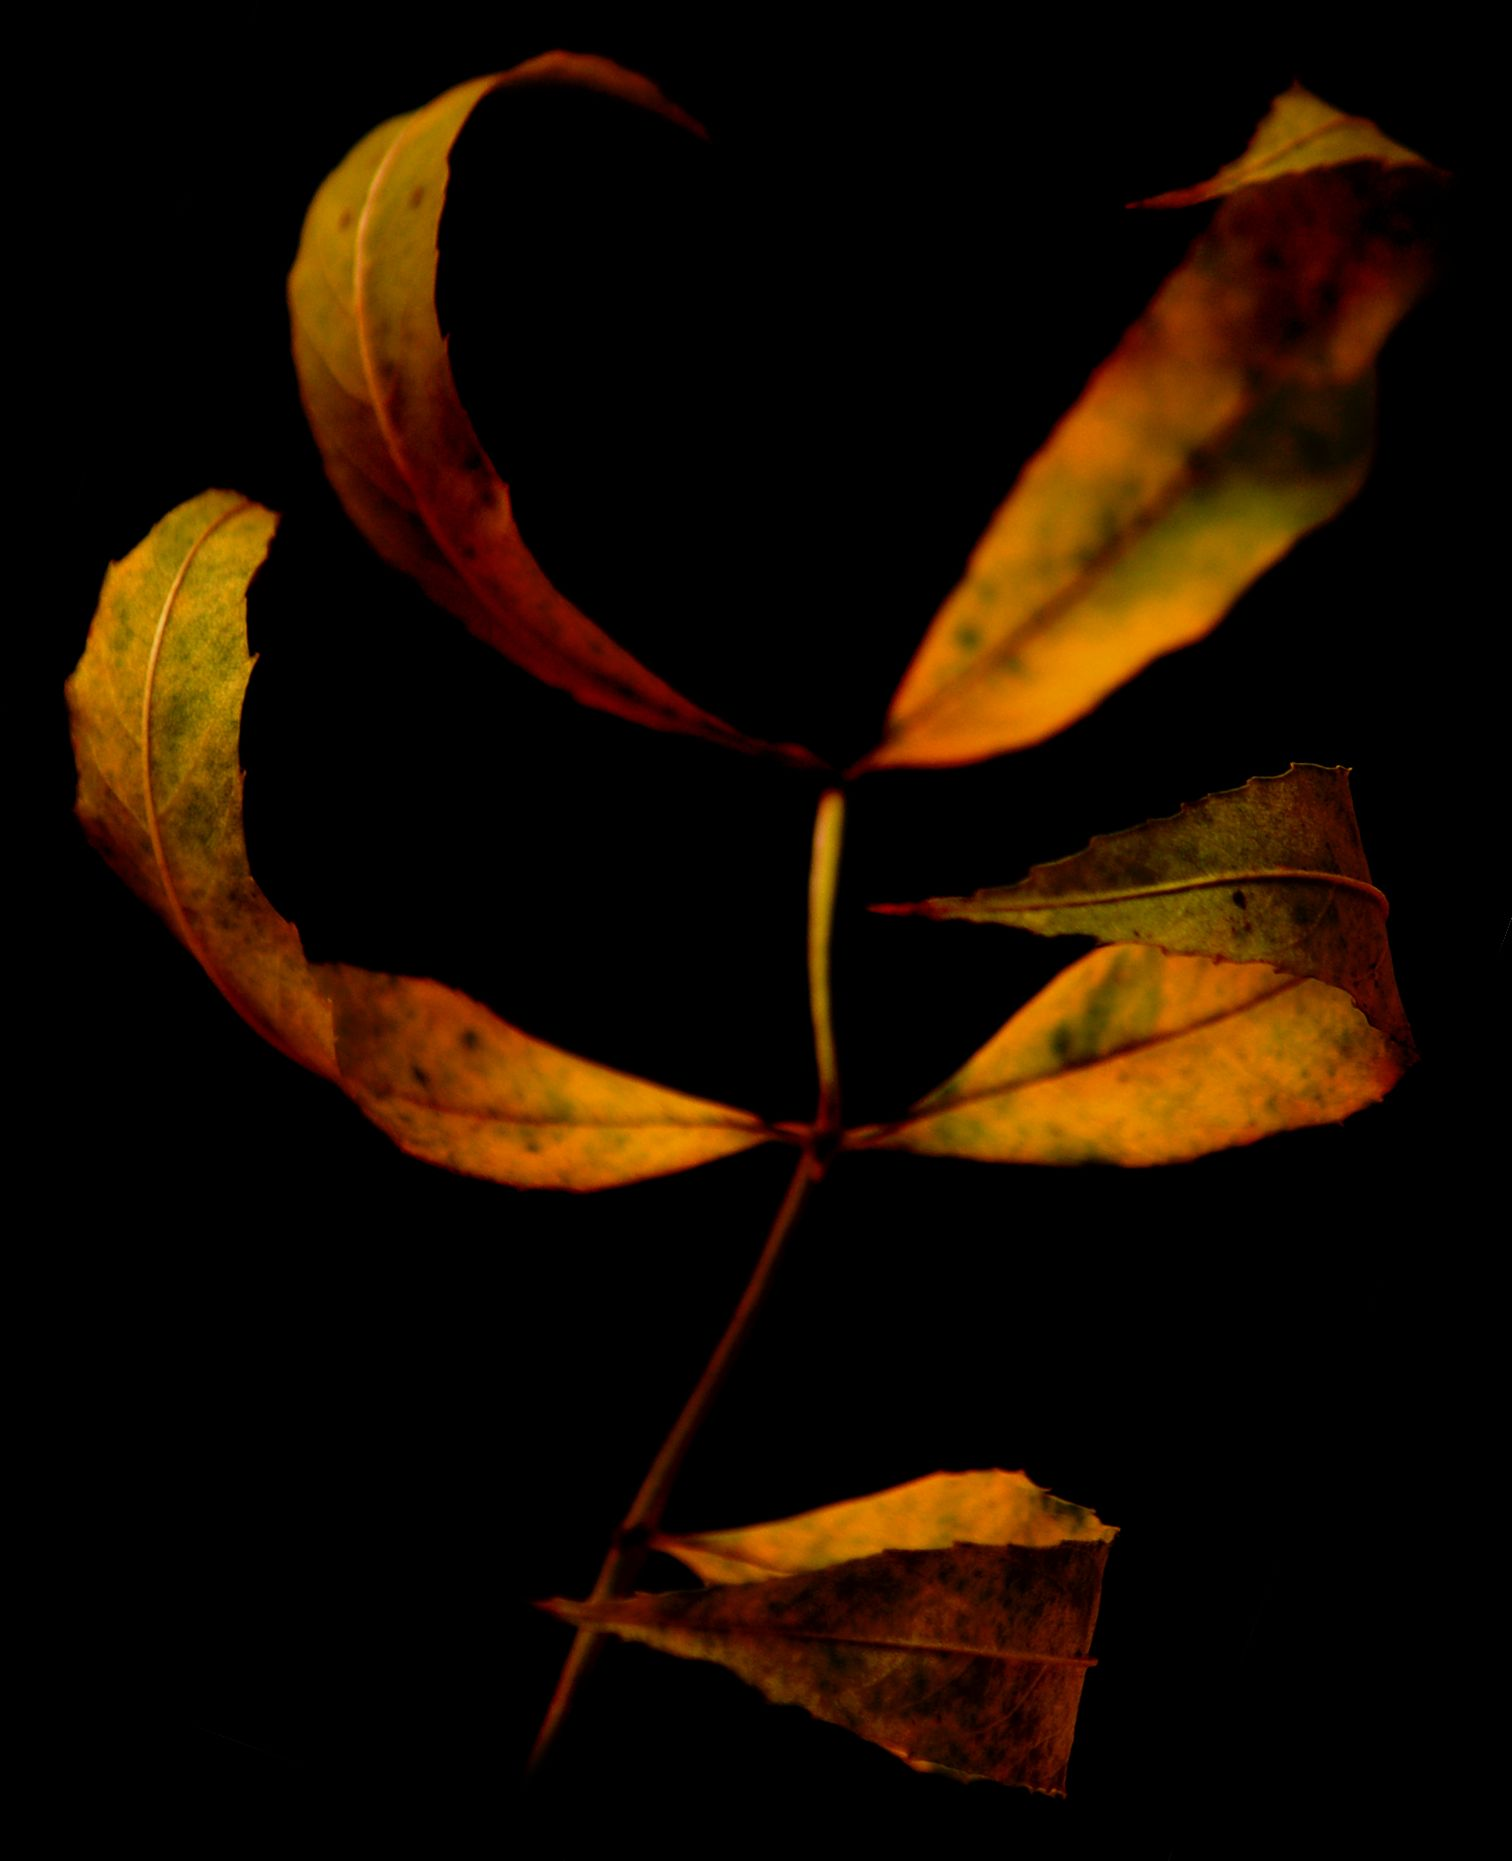 Clawed Leaves